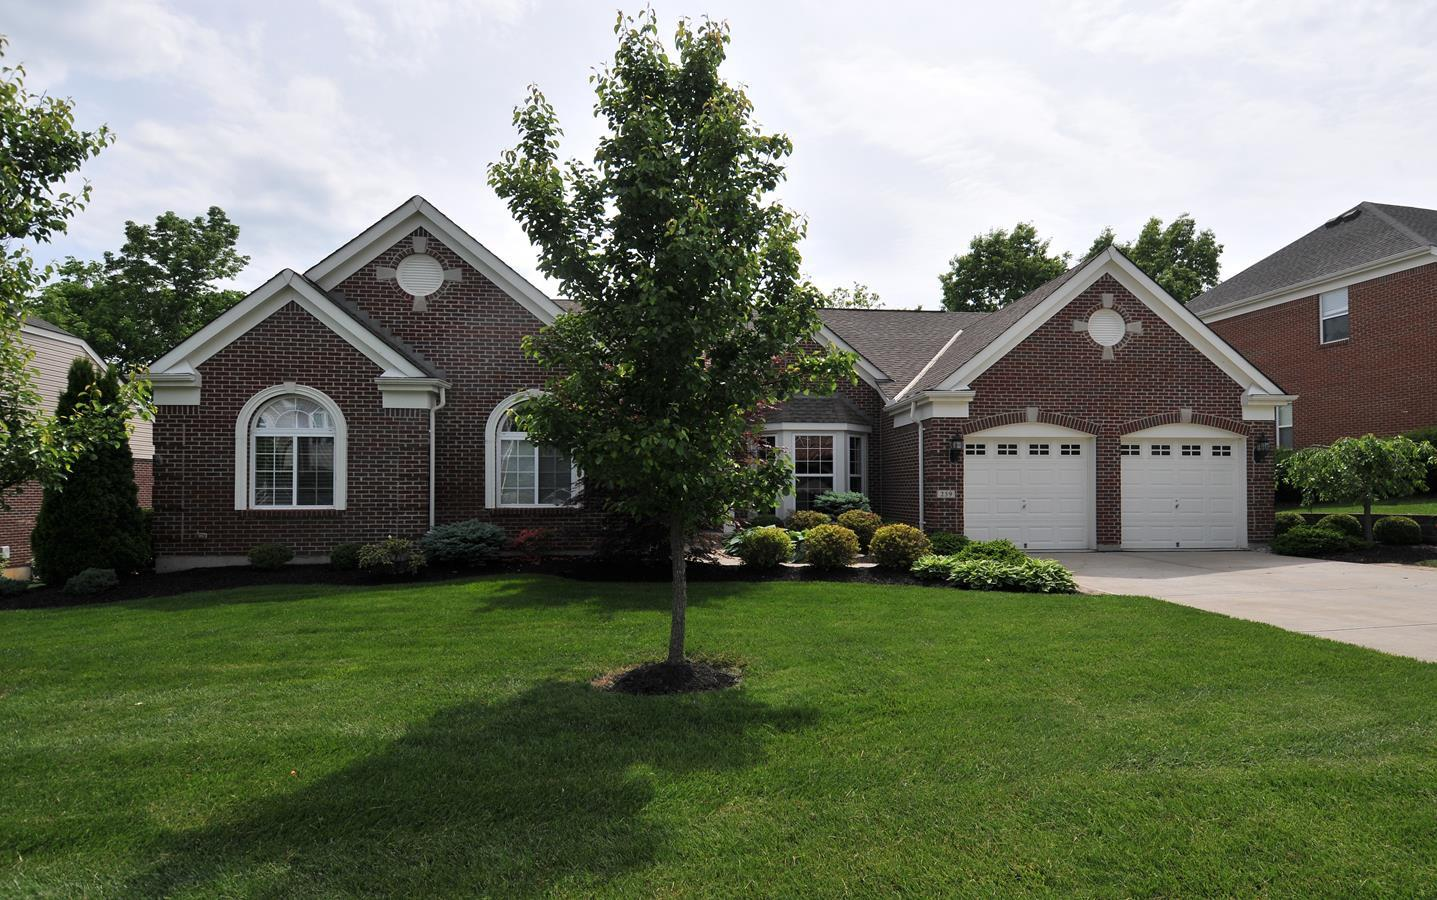 Photo 1 for 259 Ridgepointe Dr Cold Spring, KY 41076